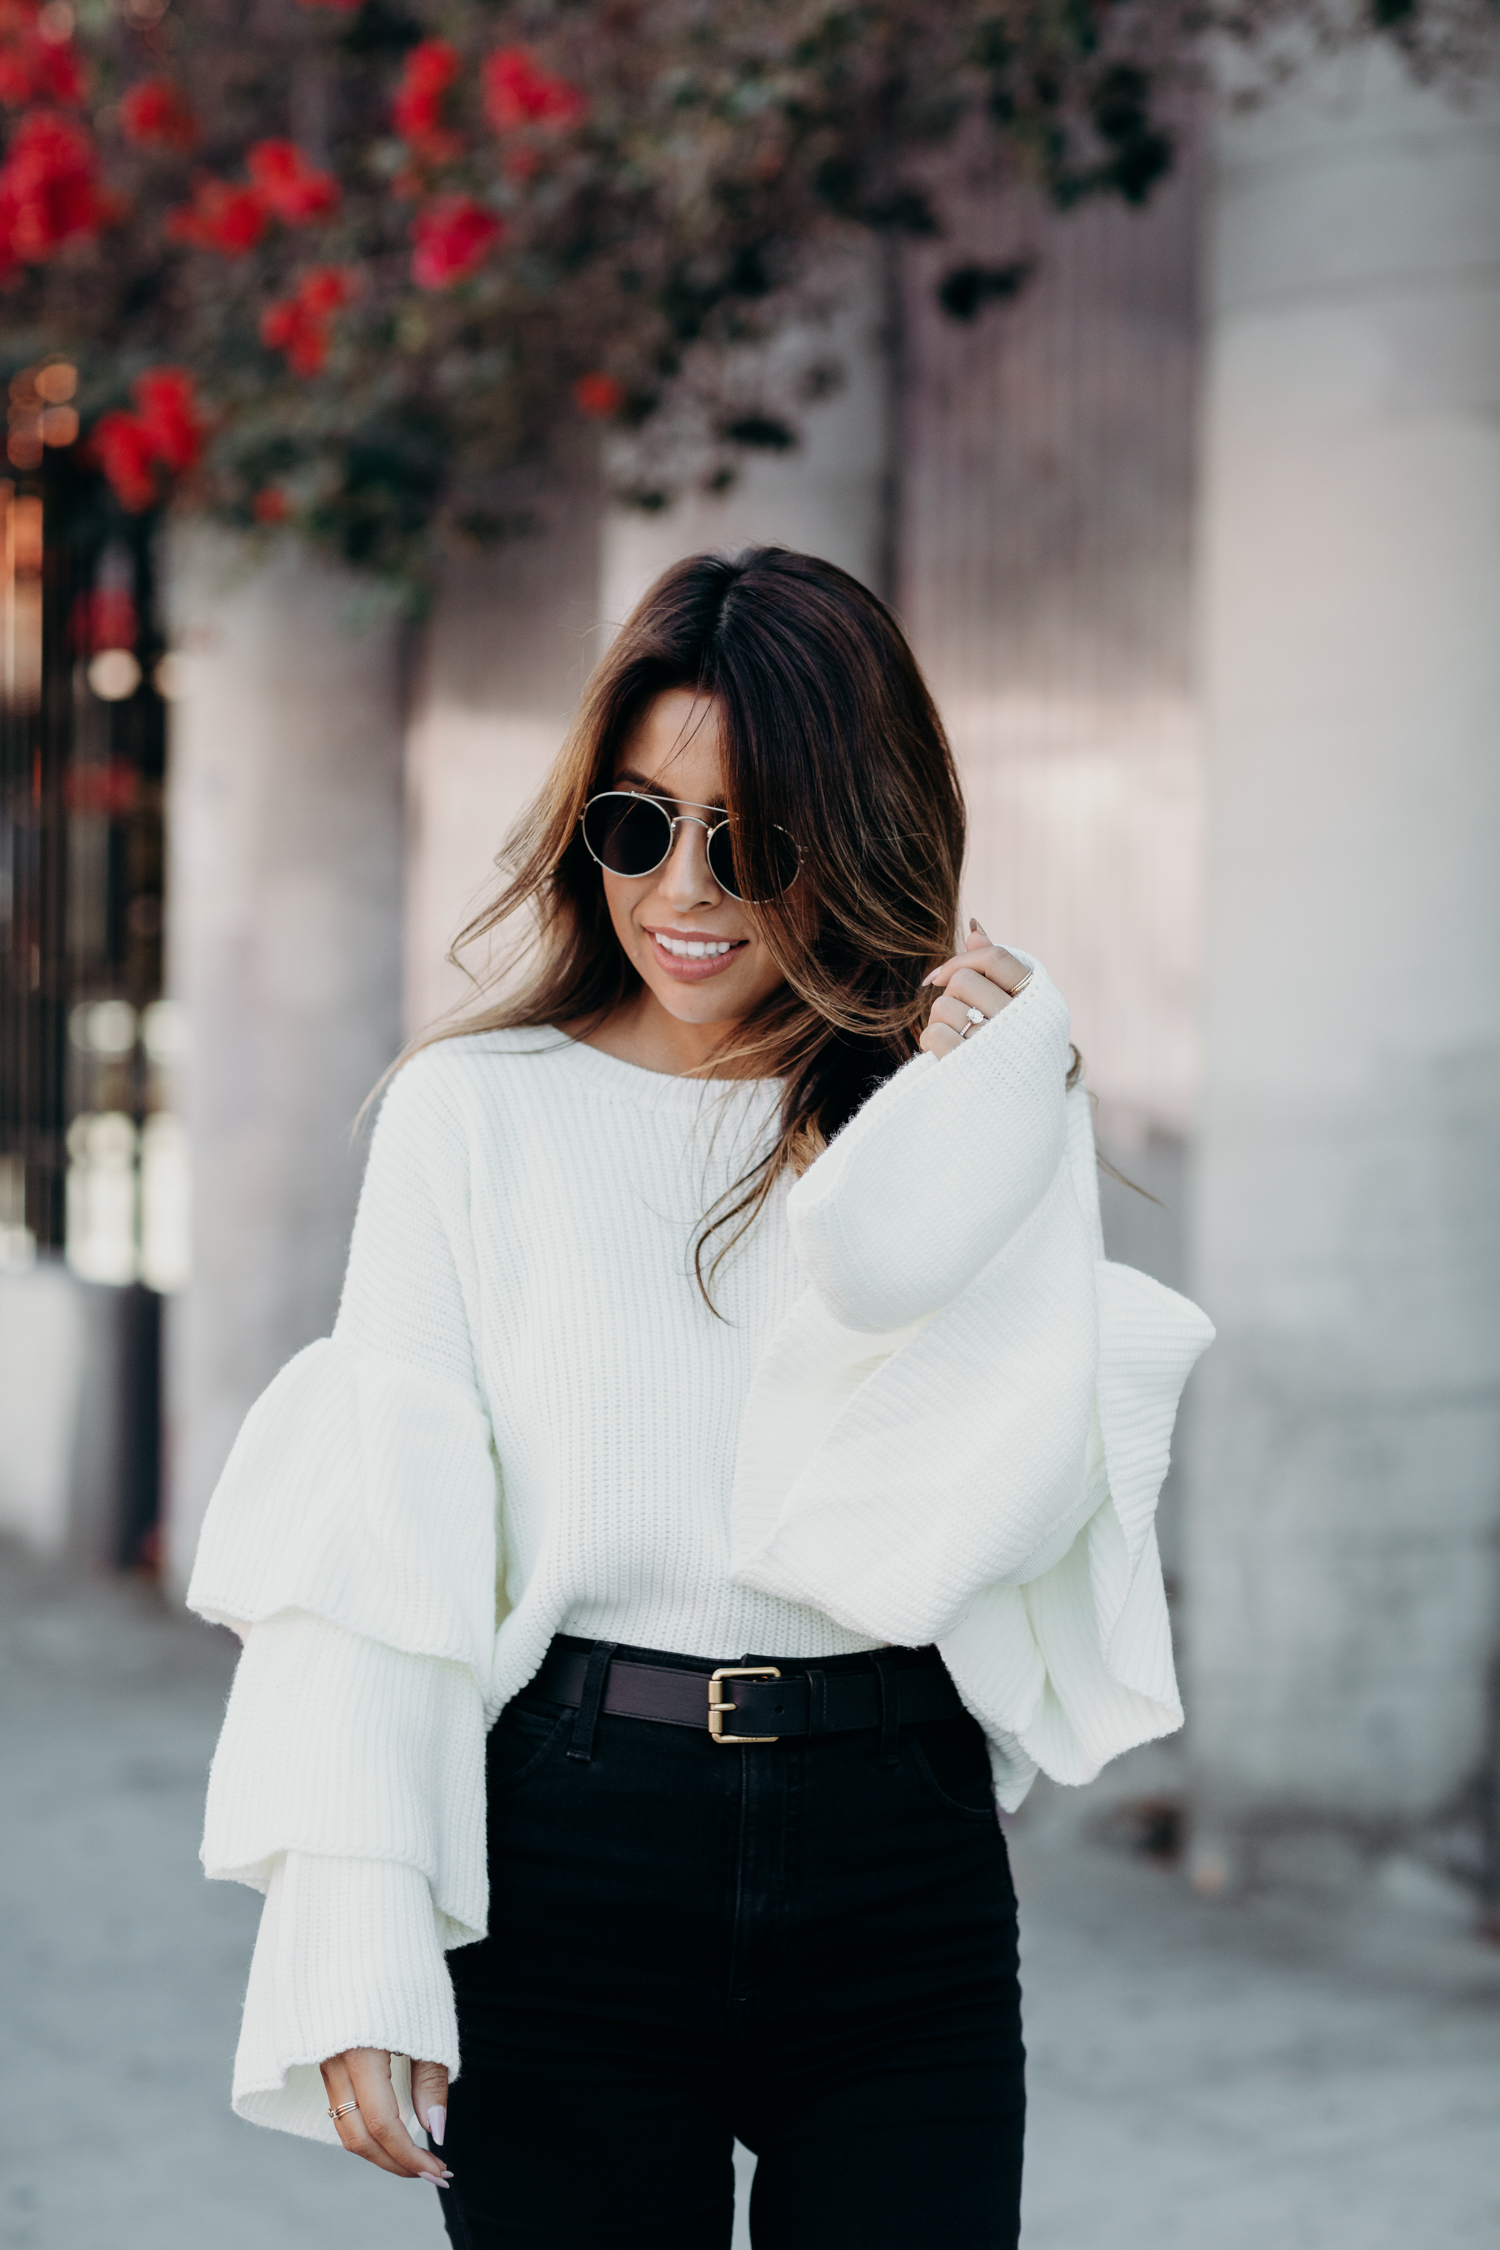 ribbed ruffle sleeve sweater outfit, gucci belt, joes jeans, fall outfit ideas from Everyday Pursuits